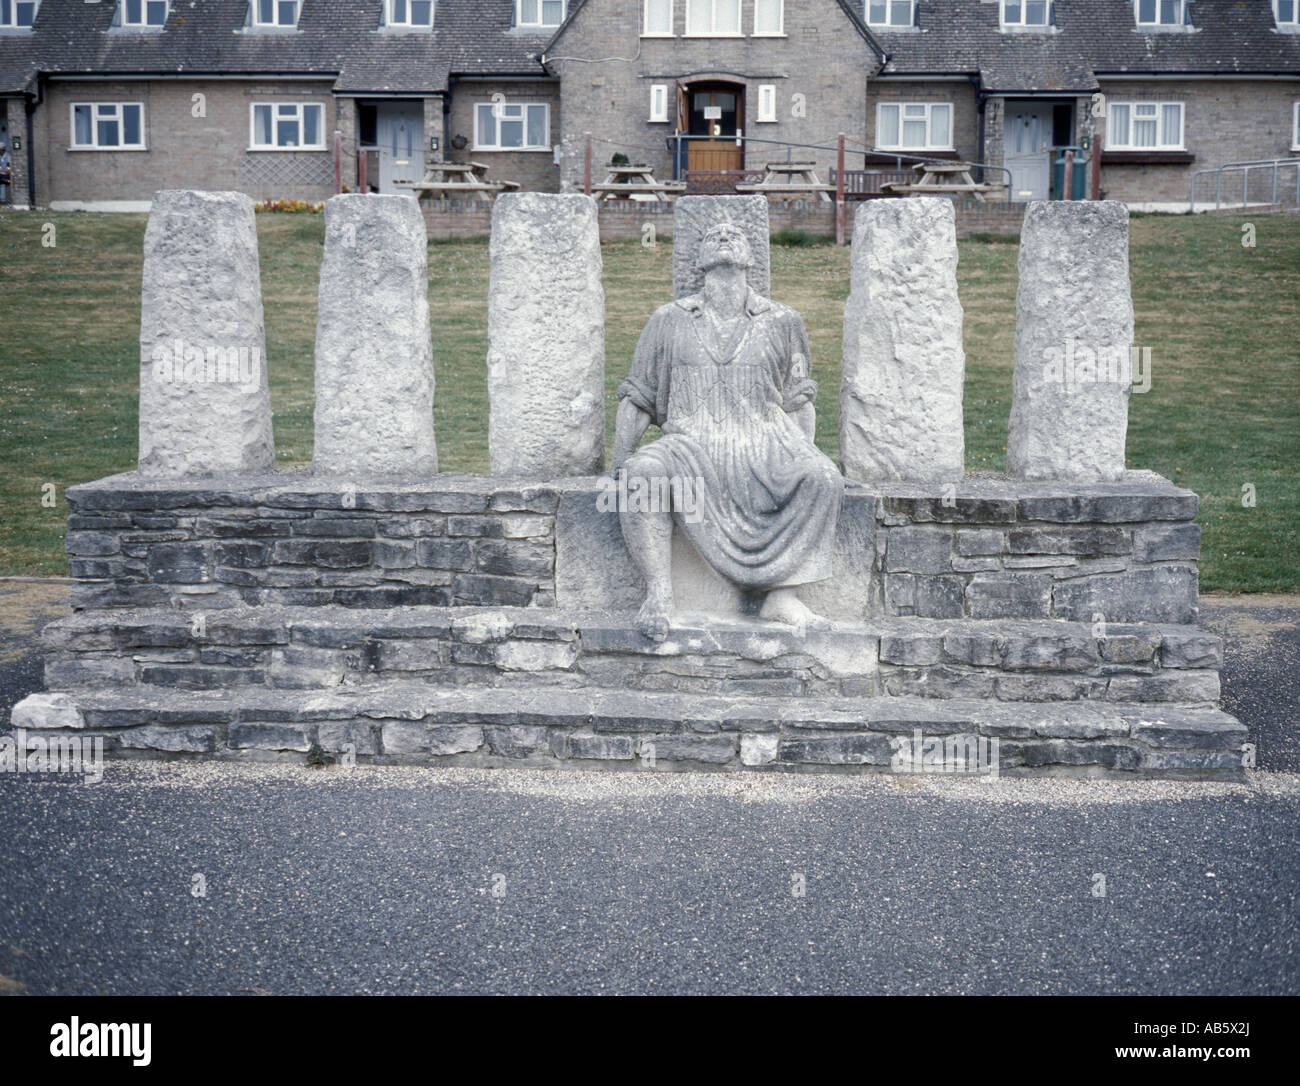 Sculpture of George Loveless, leader of the Tolpuddle Martyrs, with Trades Union cottages beyond, Tolpuddle, Dorset, - Stock Image